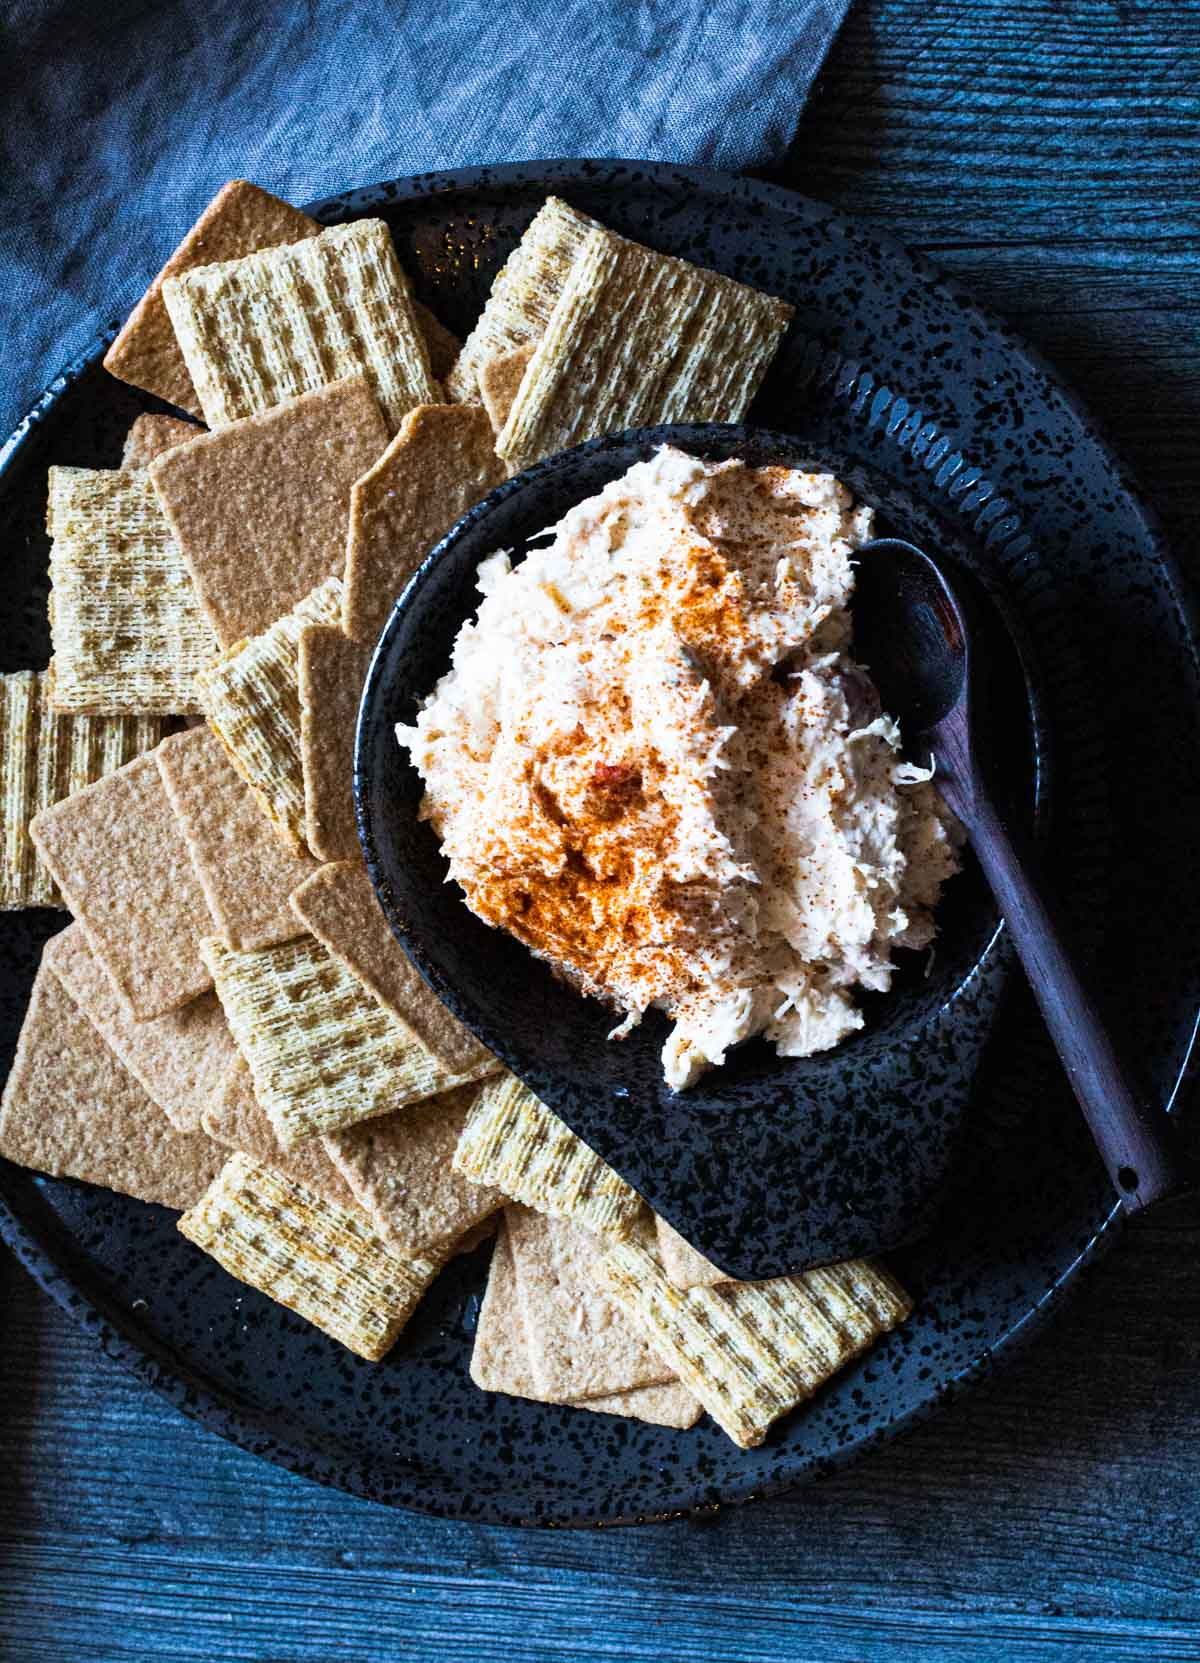 Chicken spread dip served with triscuits and wheat thin crackers.